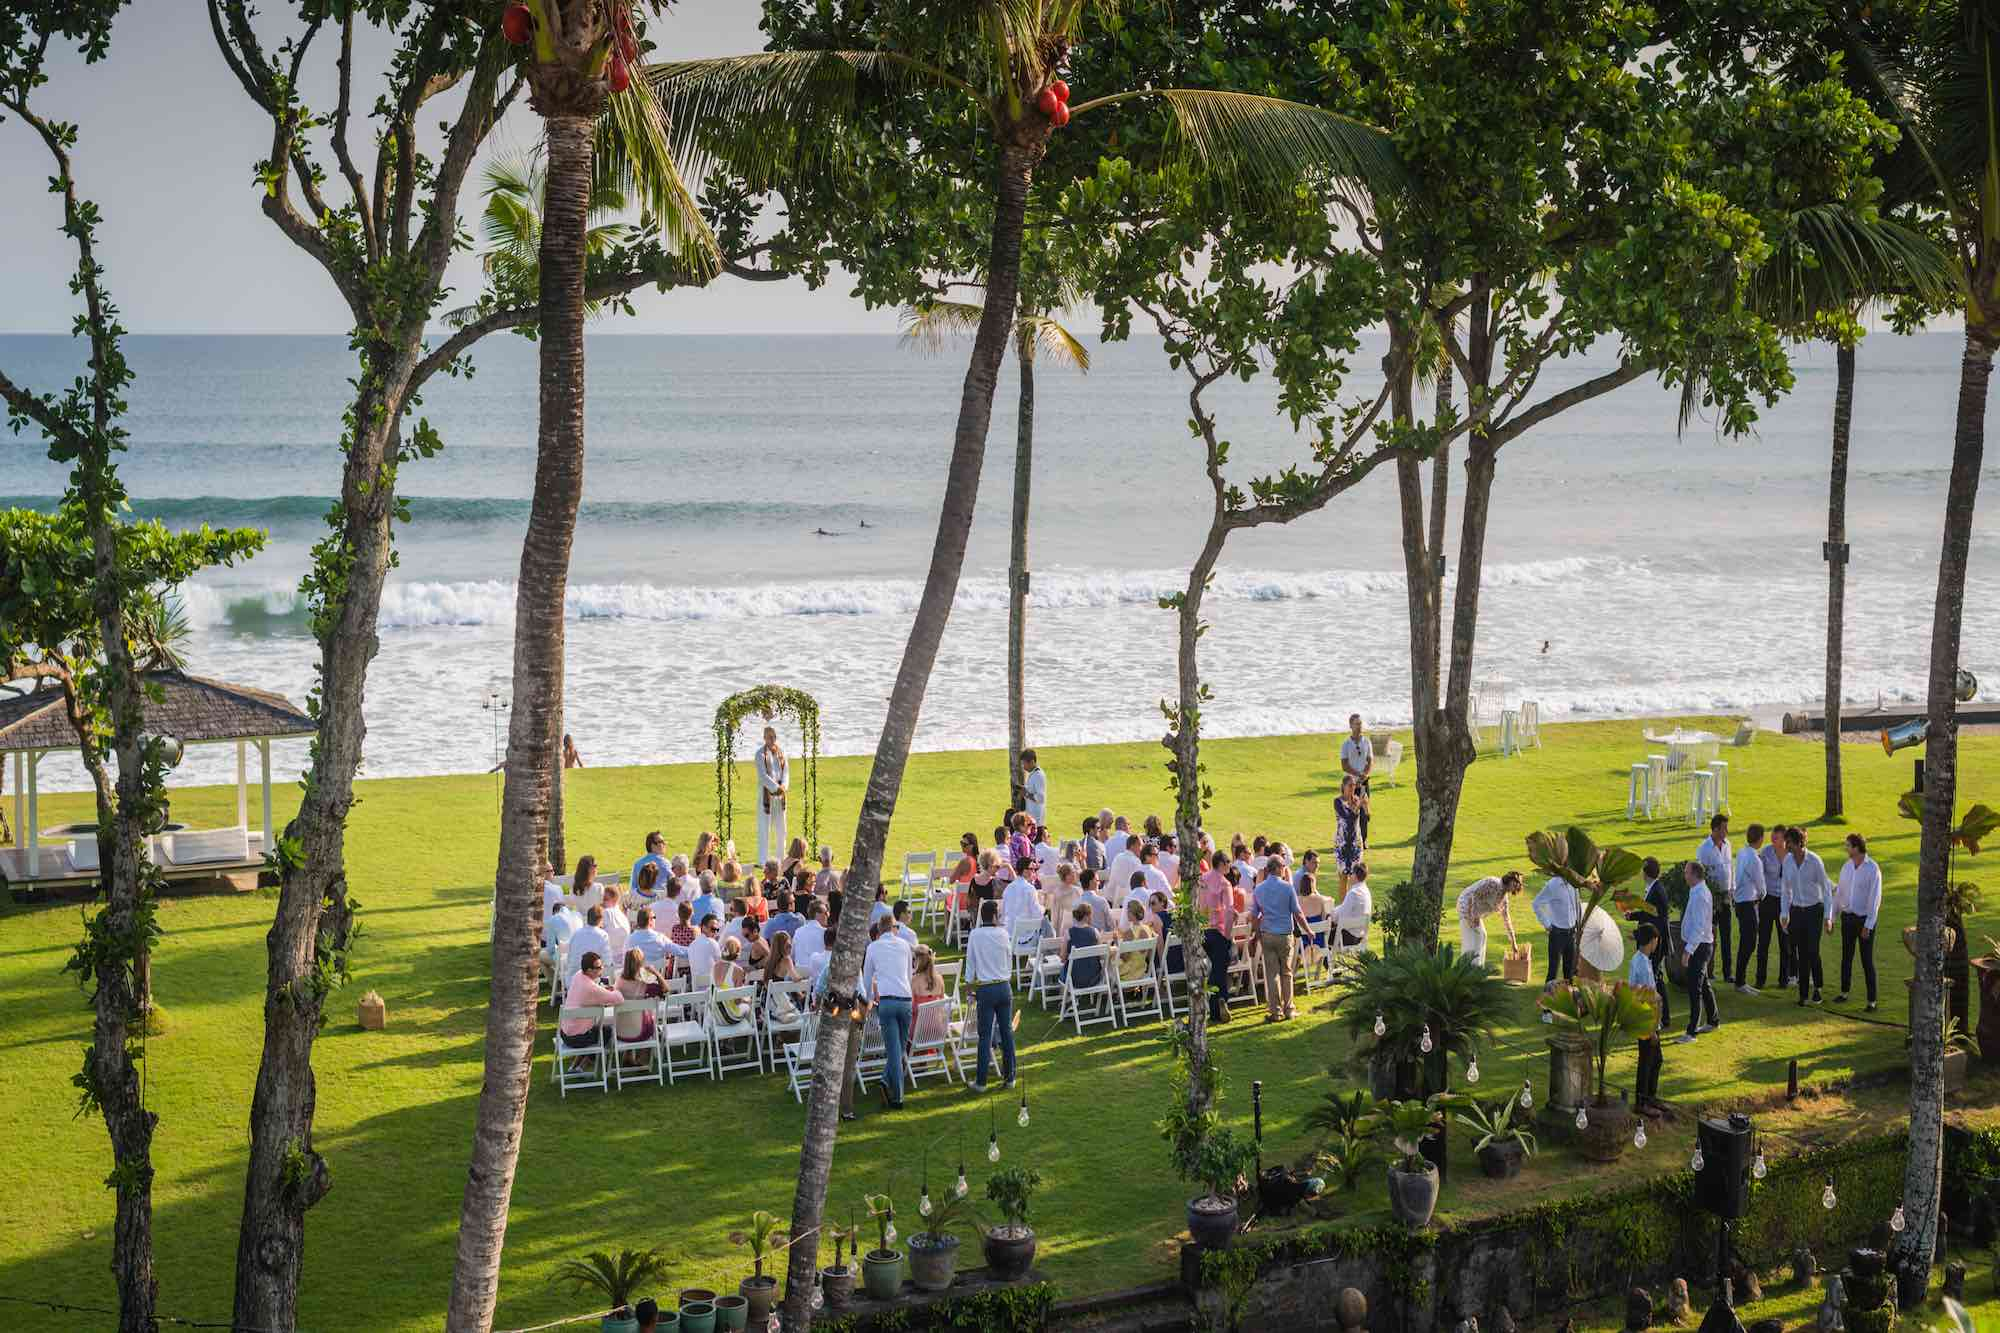 Planning a Wedding in Bali? 7 Things You Need to Know